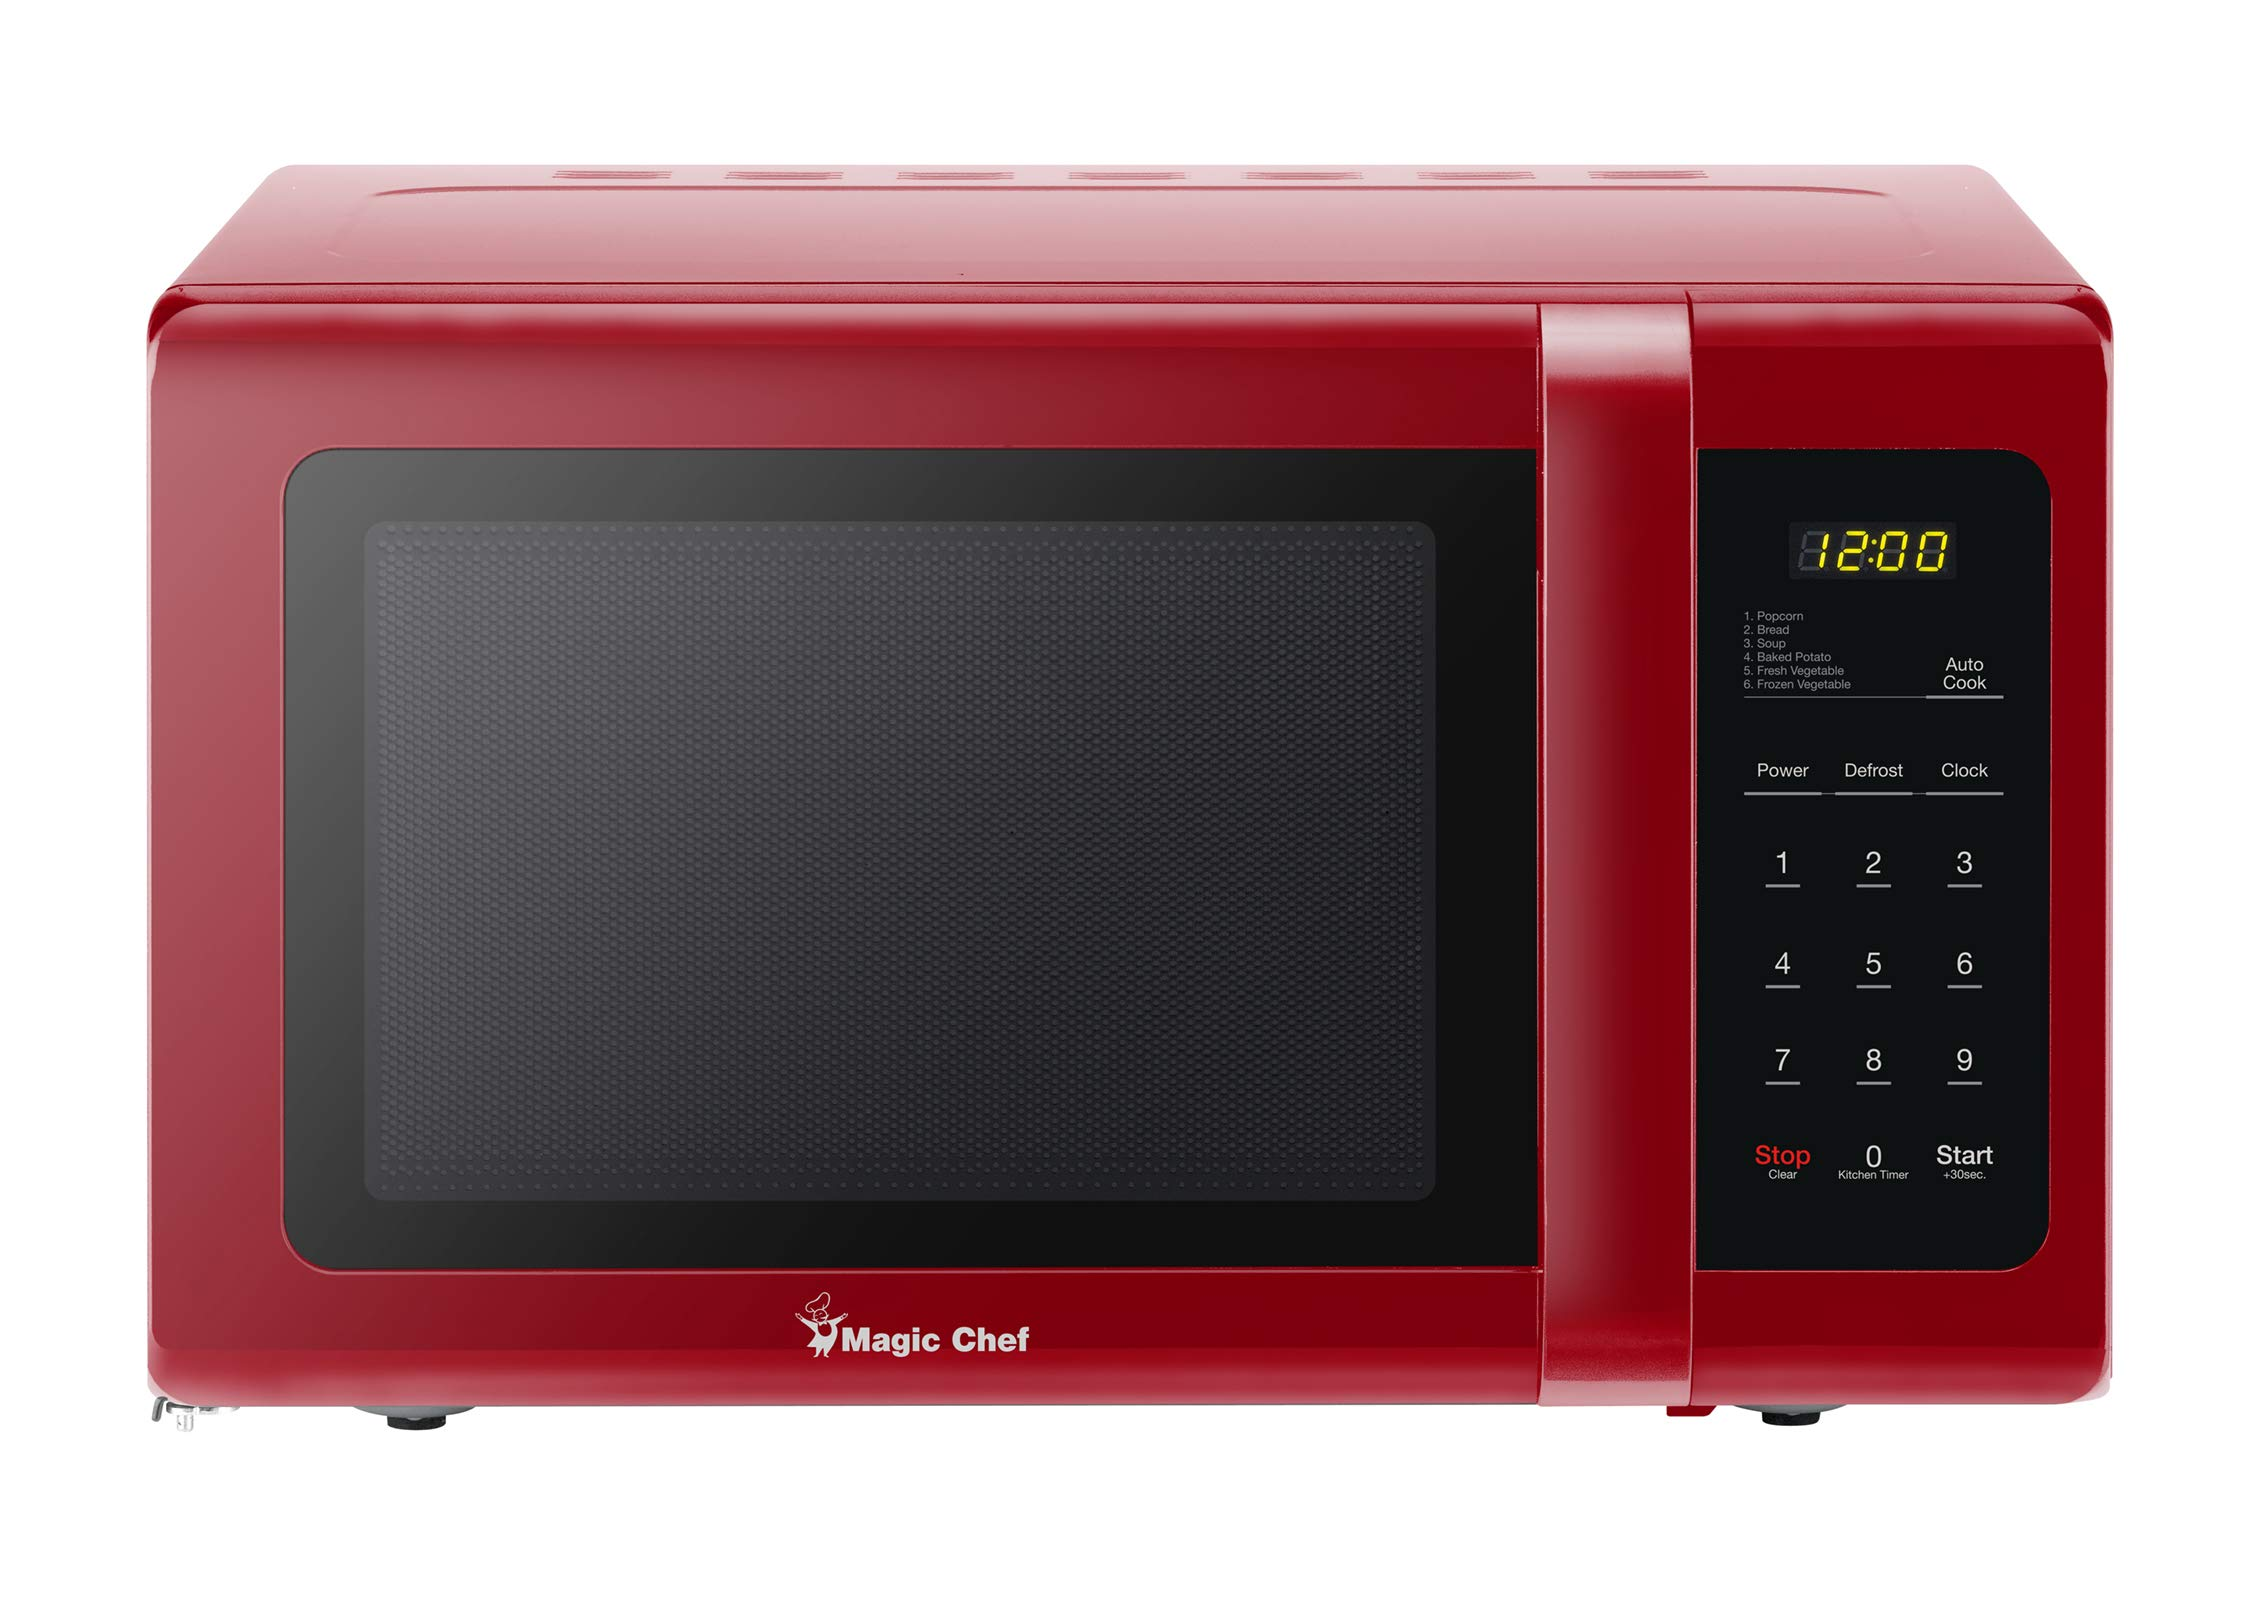 Magic Chef Microwave MCD993R 0.9 Cubic-ft Countertop, Red